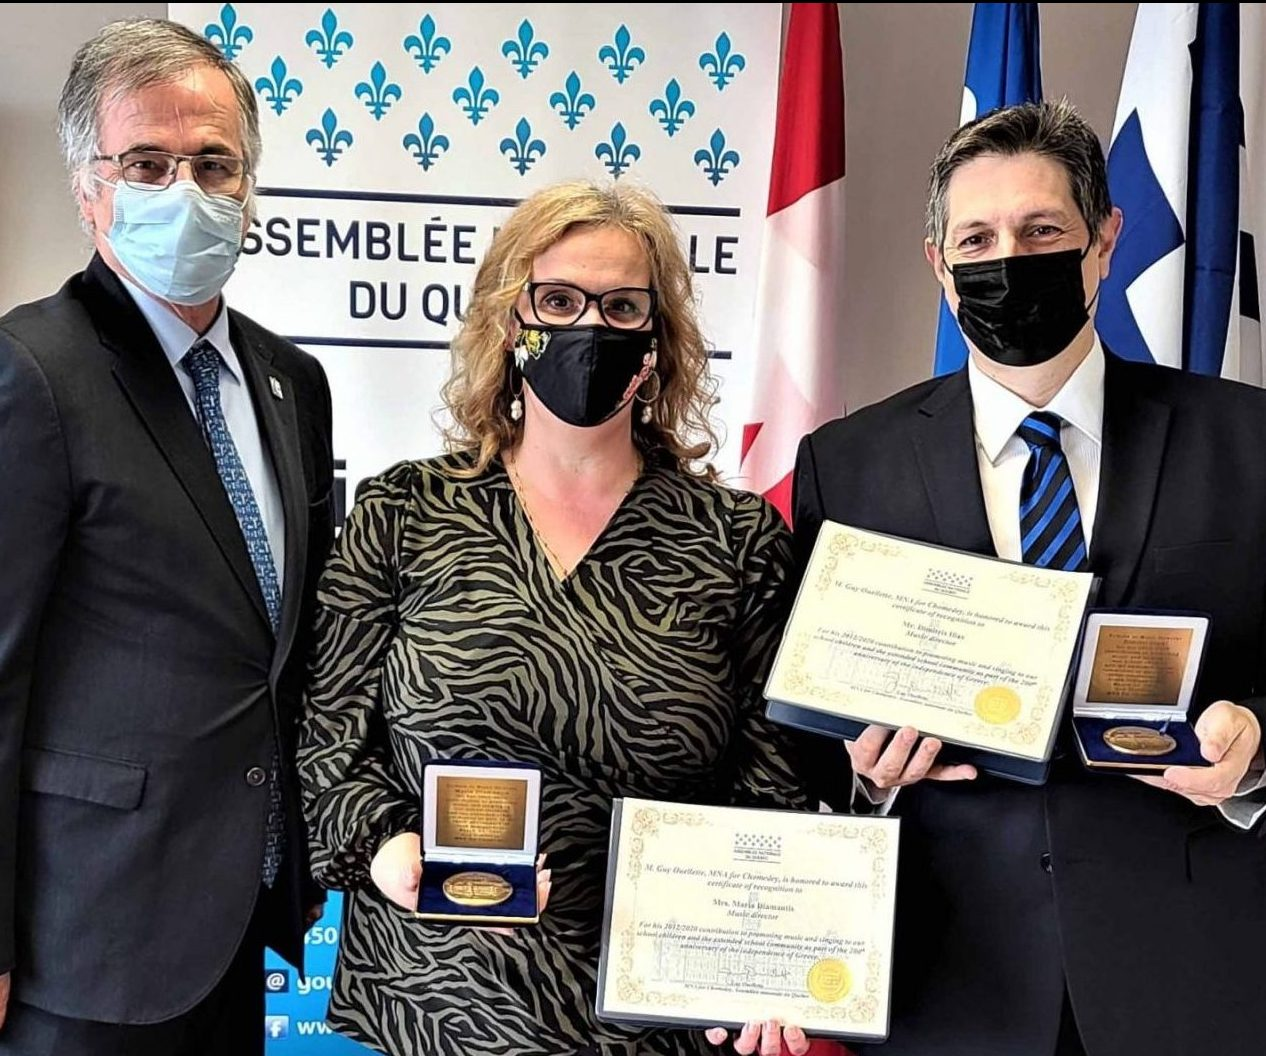 Maria Diamantis and Dimitris Ilias presented with National Assembly Medals